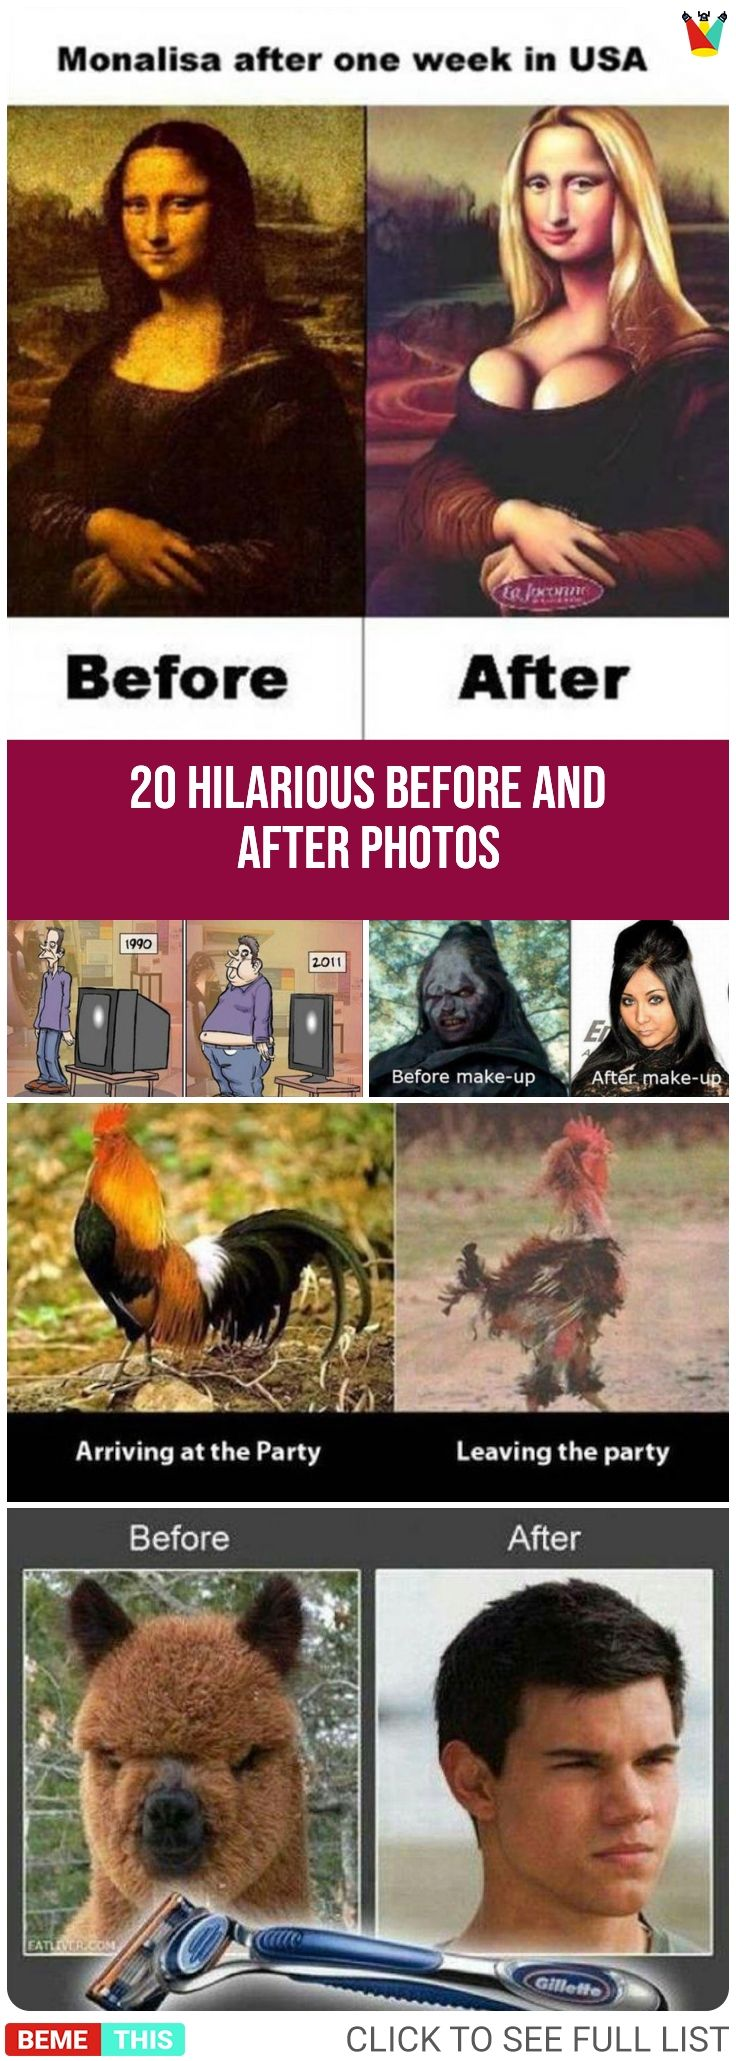 20 Hilarious Random Dump of Before and After Photos #funnypics #funnypictures #beforeandafter #humor #random #photos #bemethis